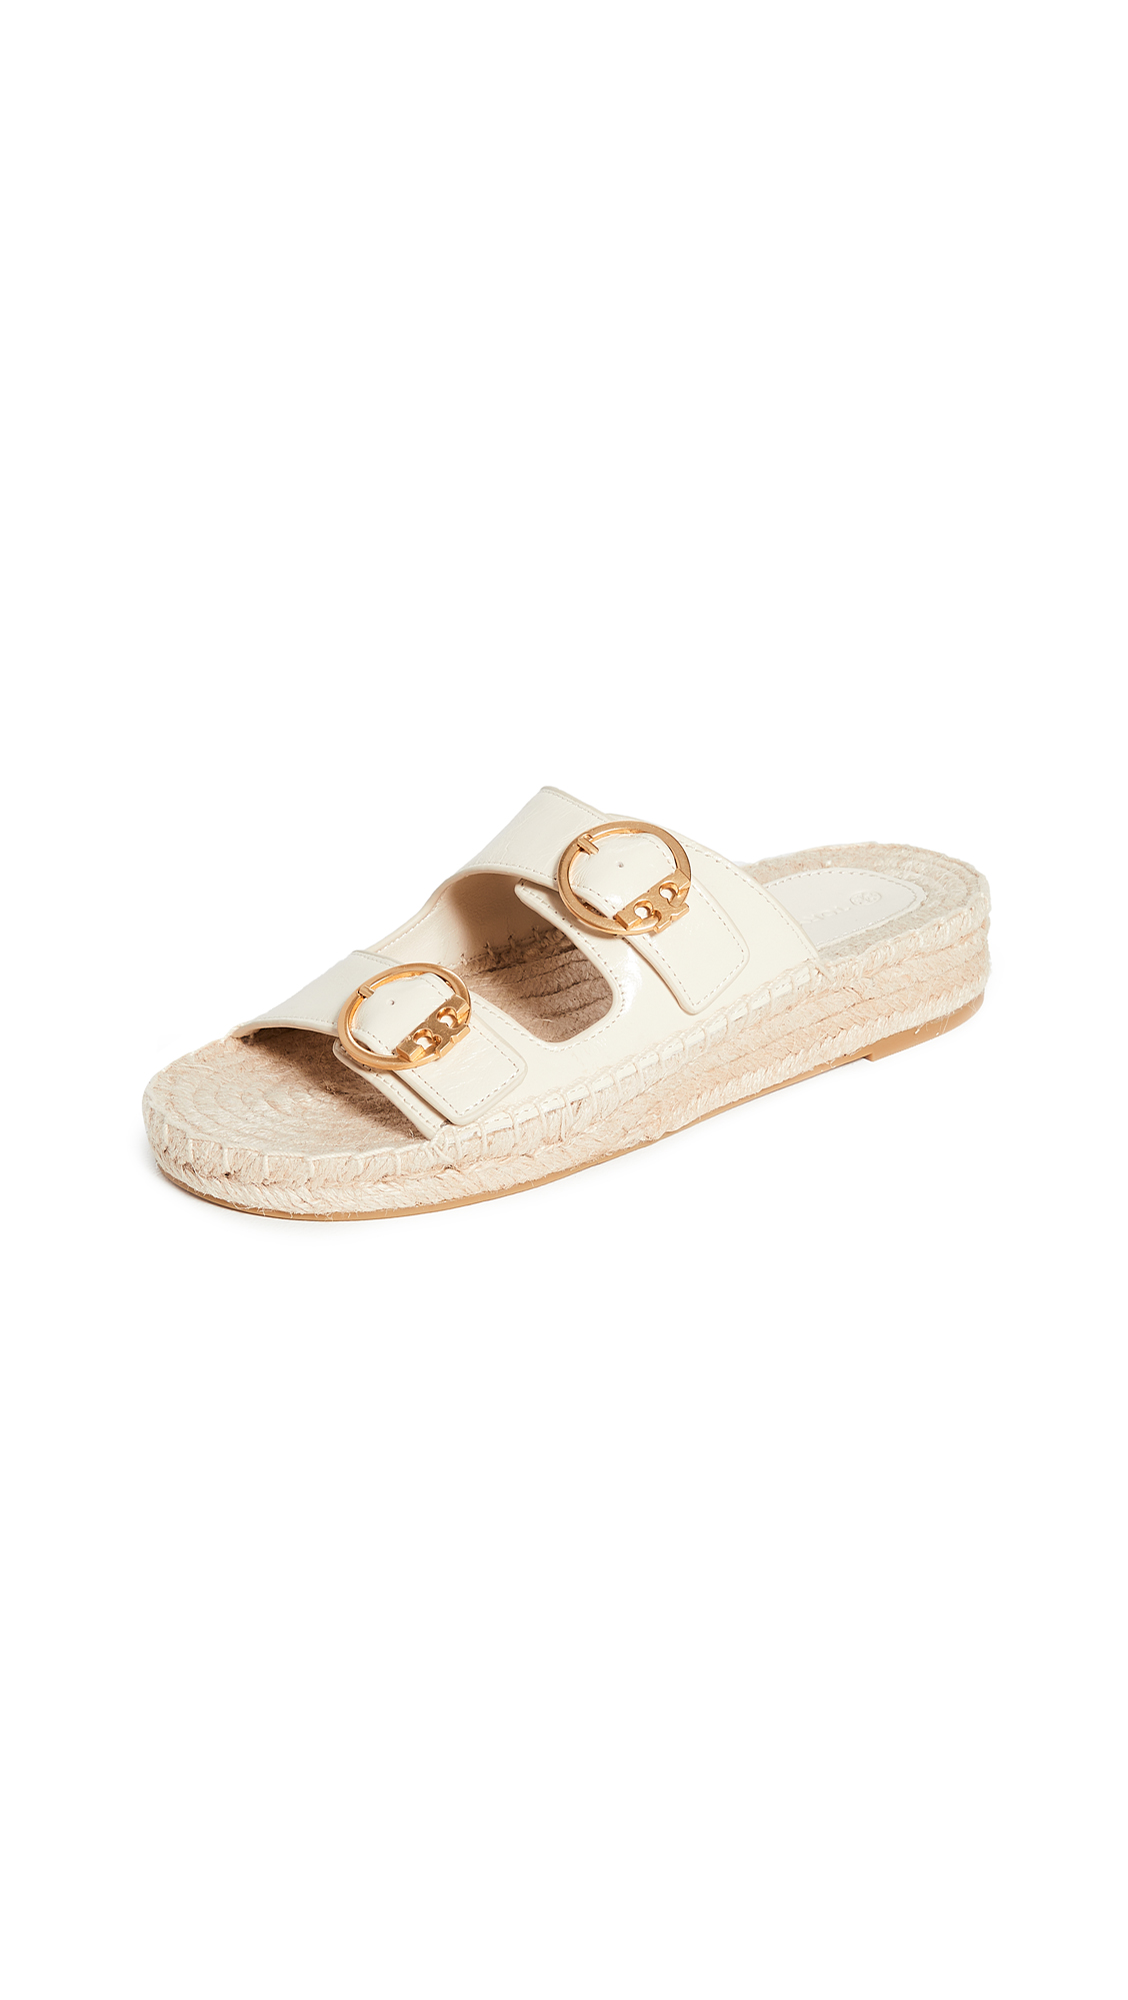 Tory Burch Selby Two-Band Espadrille Slides